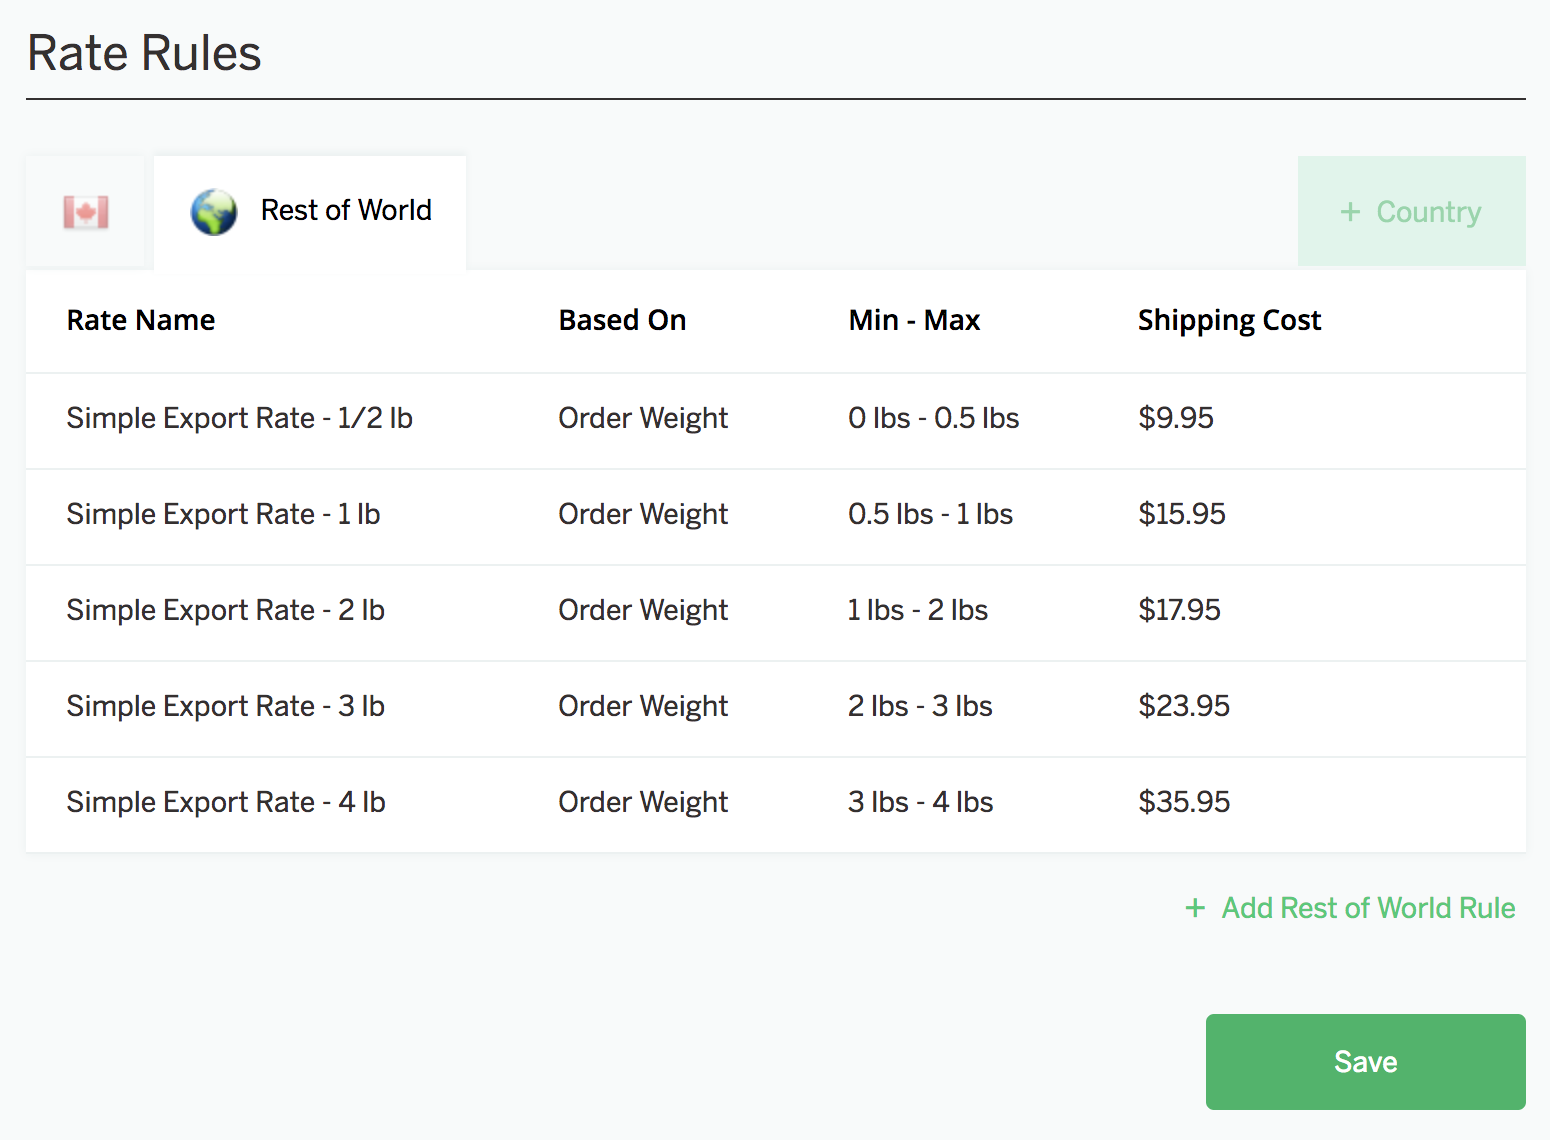 A screenshot showing the Rate Rules for 'Rest of World,' using Simple Export Rate's prices.